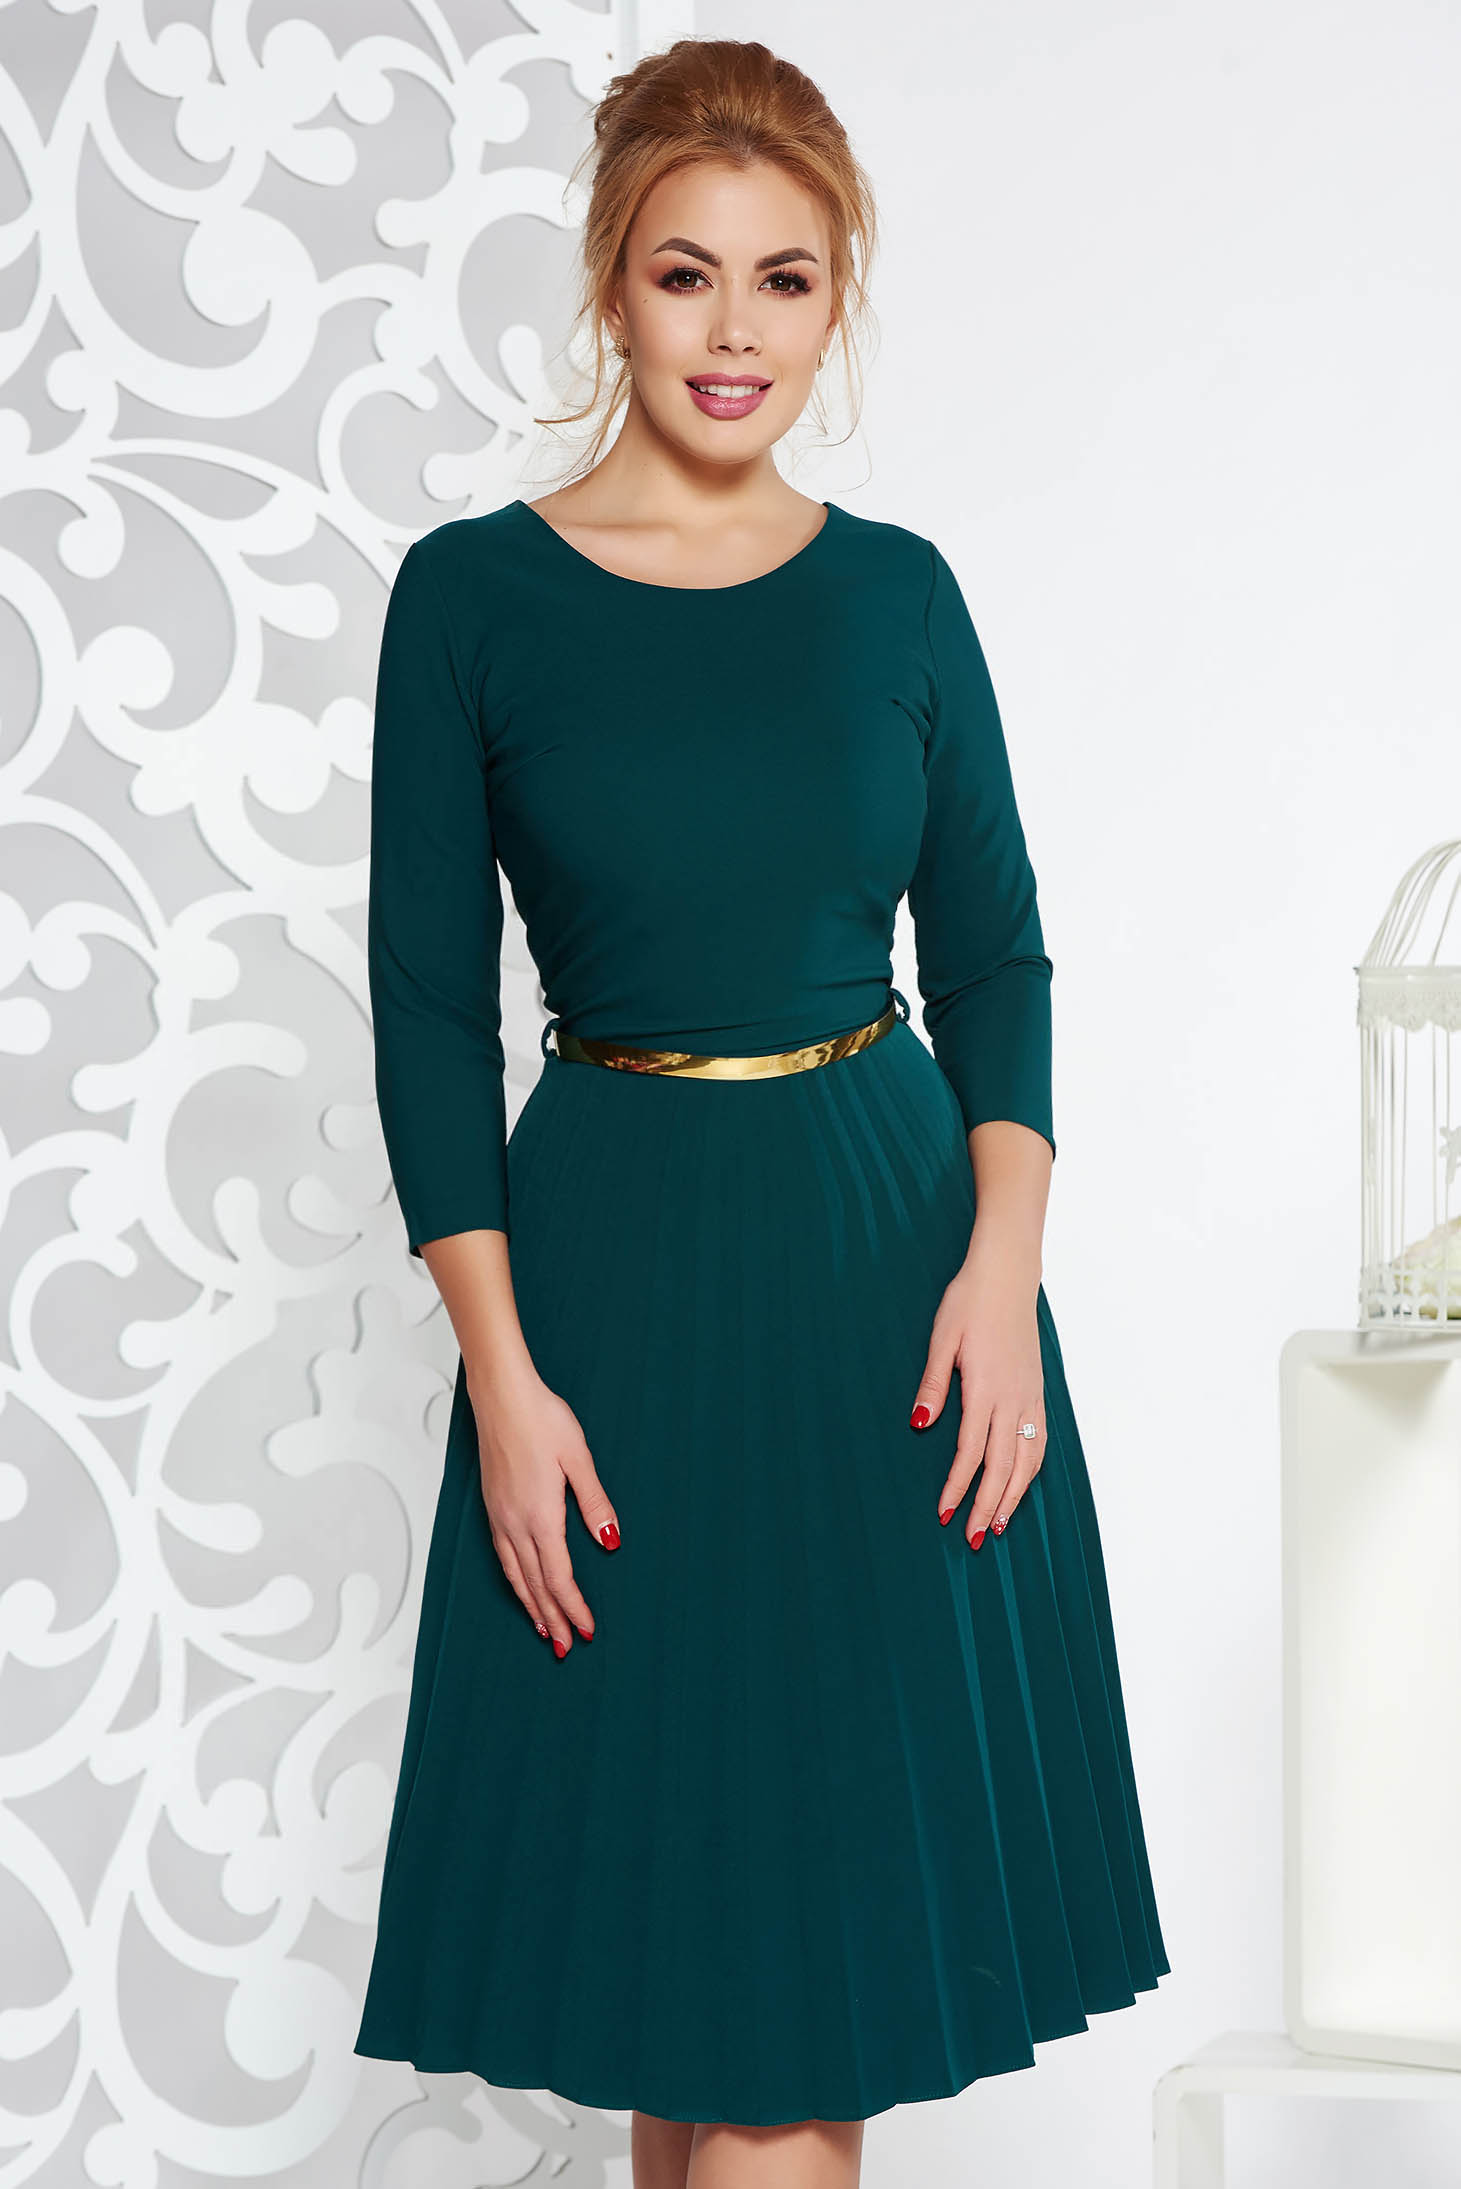 Darkgreen elegant folded up cloche dress flexible thin fabric/cloth accessorized with belt